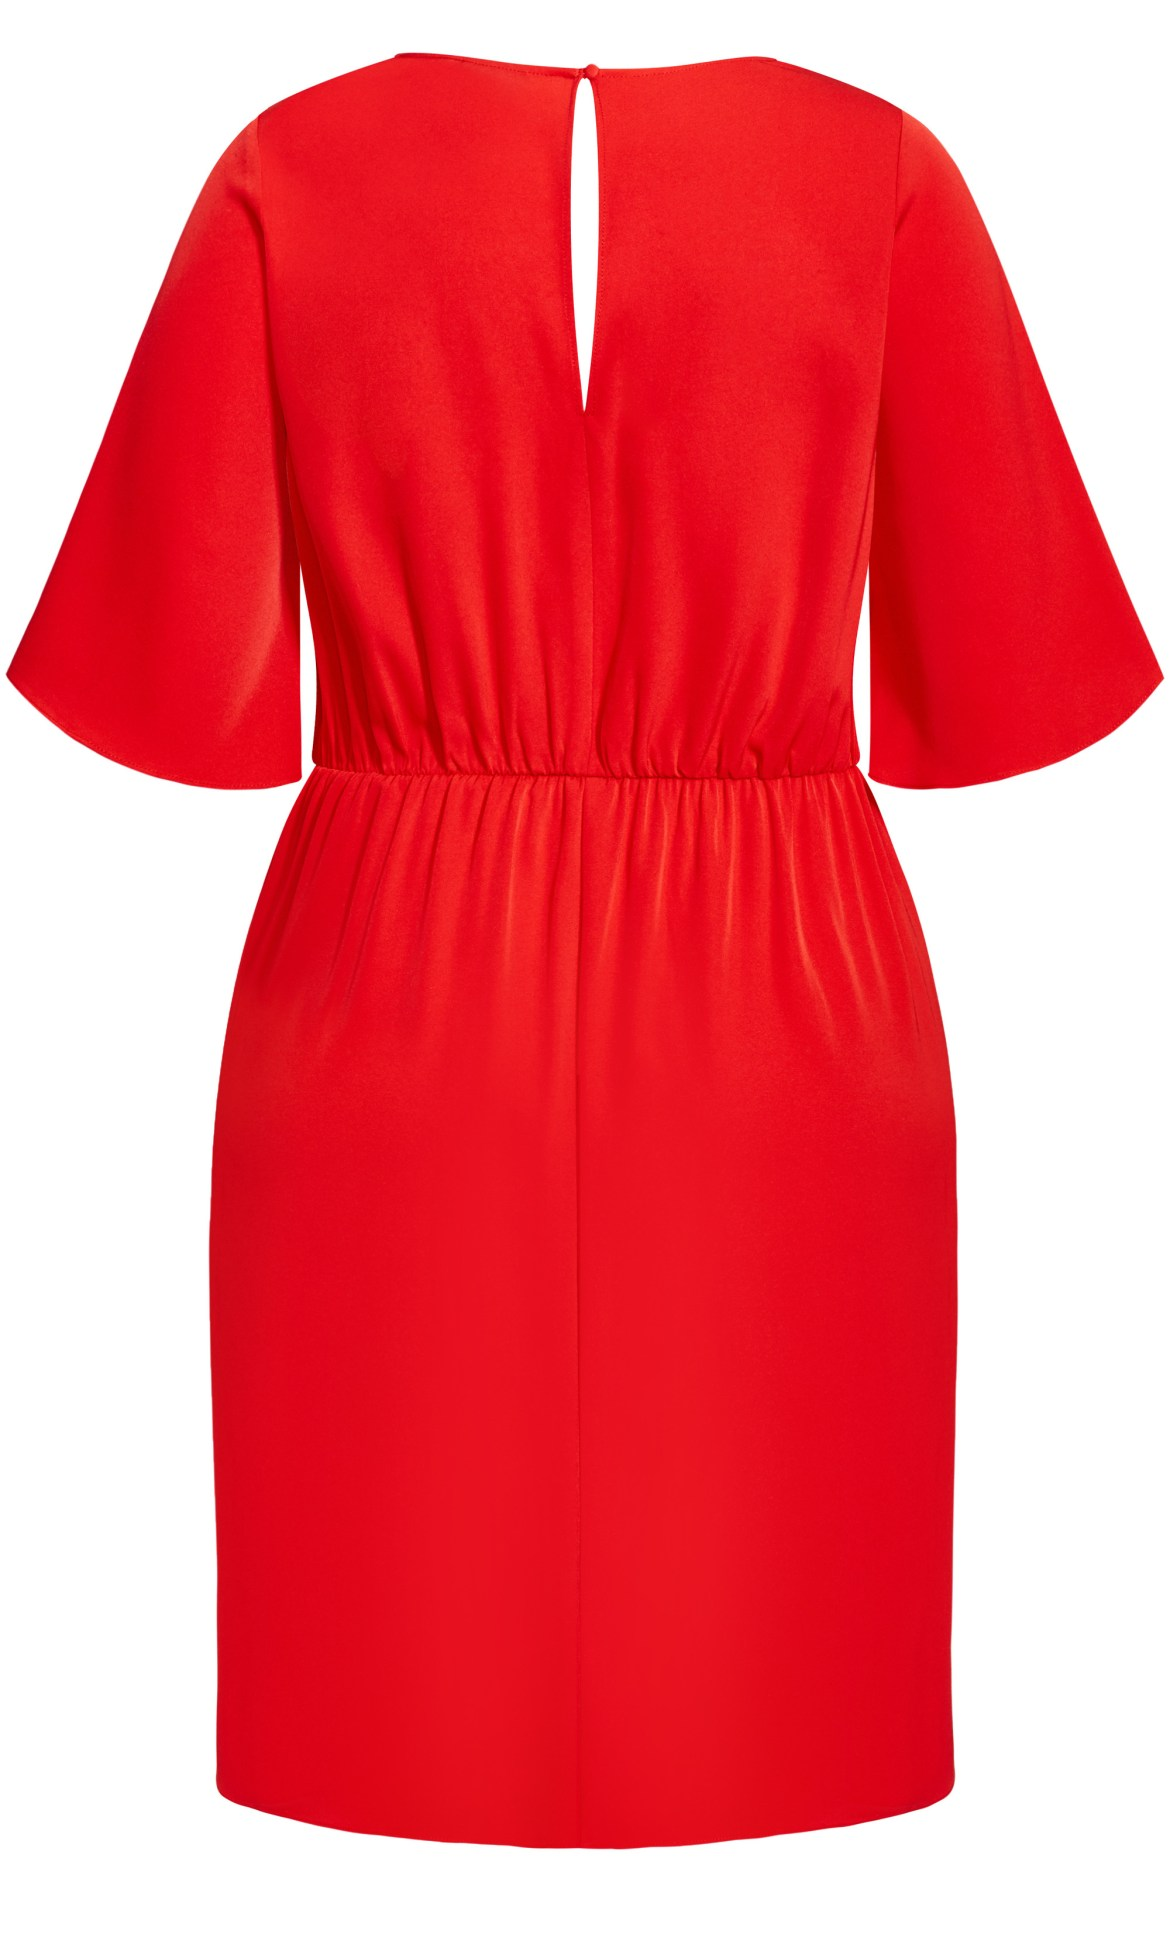 Knot Front Dress - red 6